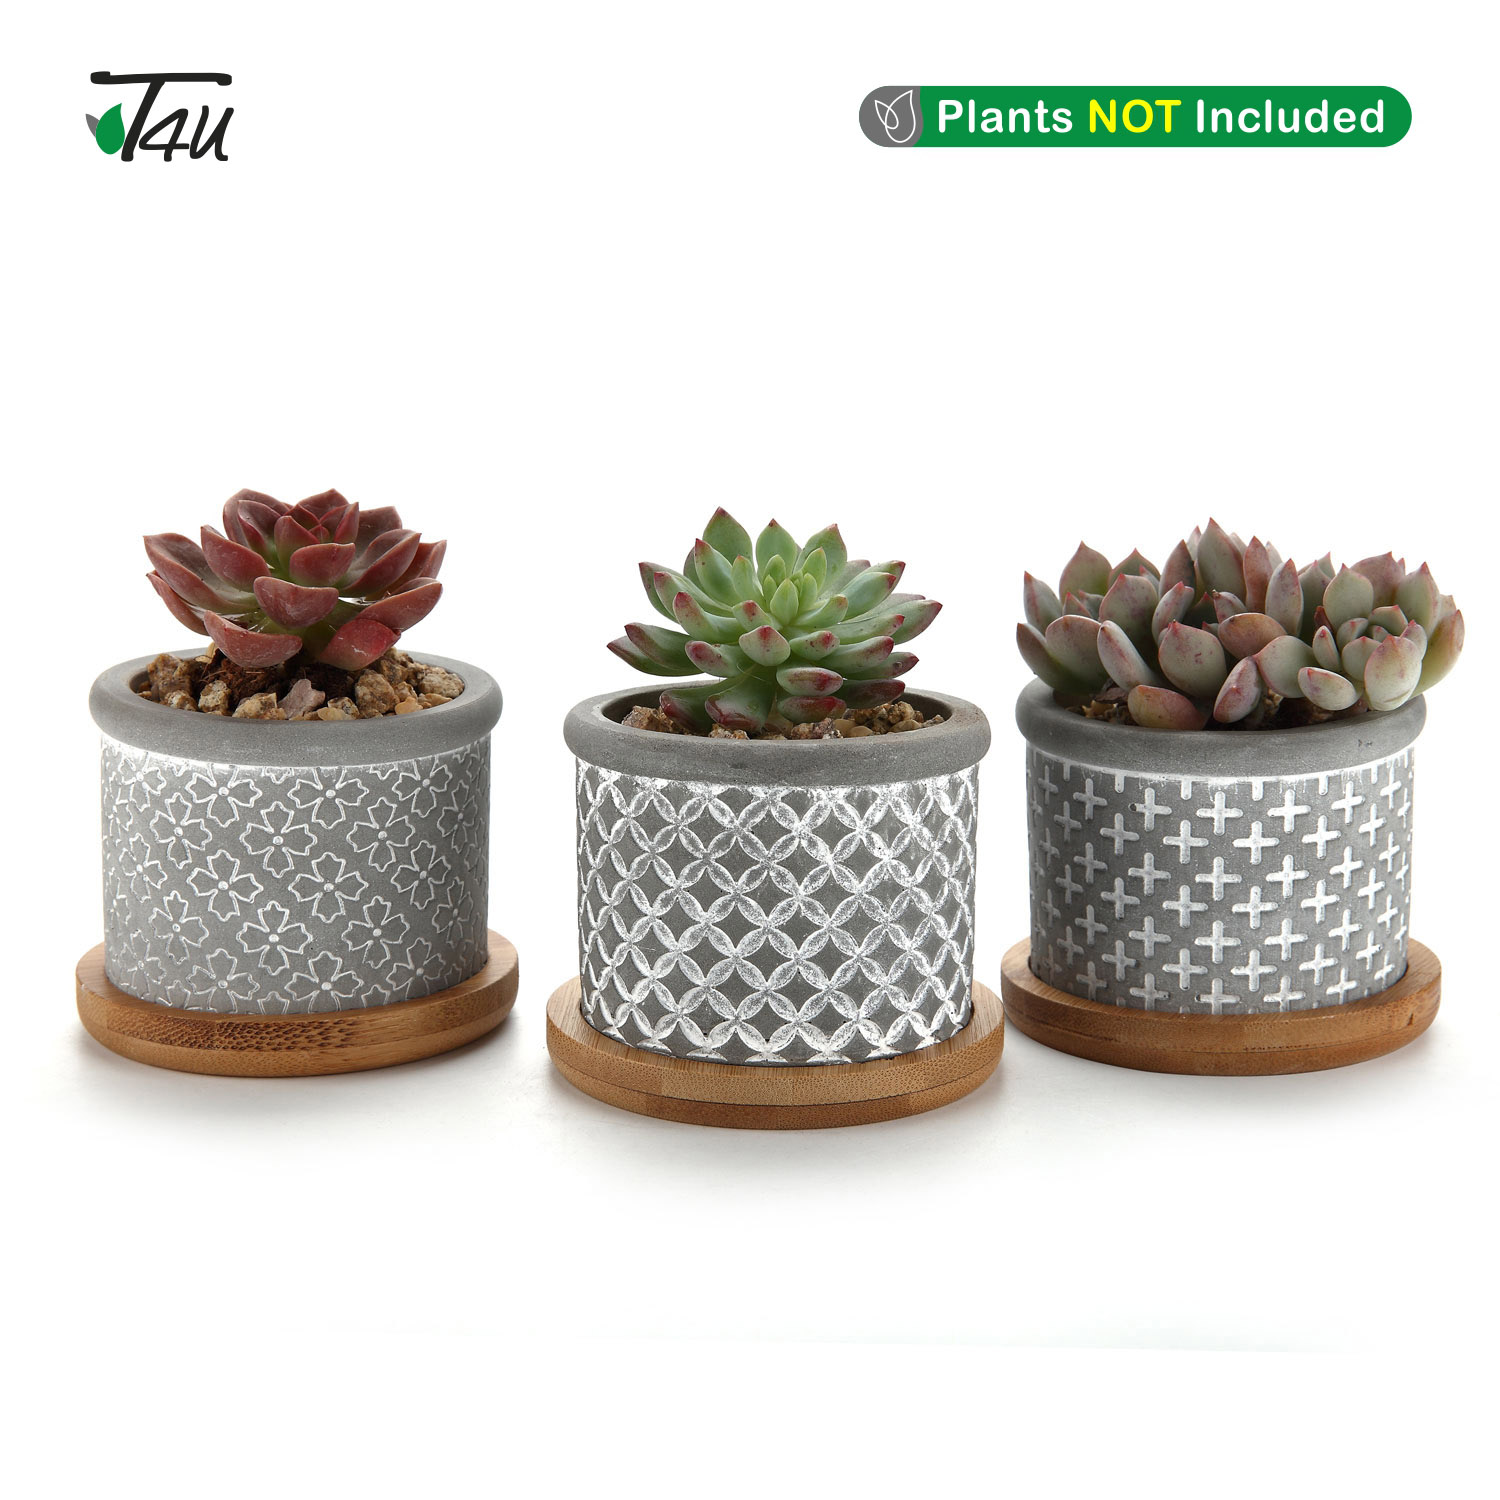 T4U 2.25 Inch Cement Succulent Planter Pot With Bamboo Tray Grey Set Of 3  Small Concrete Cactus Plant Pot